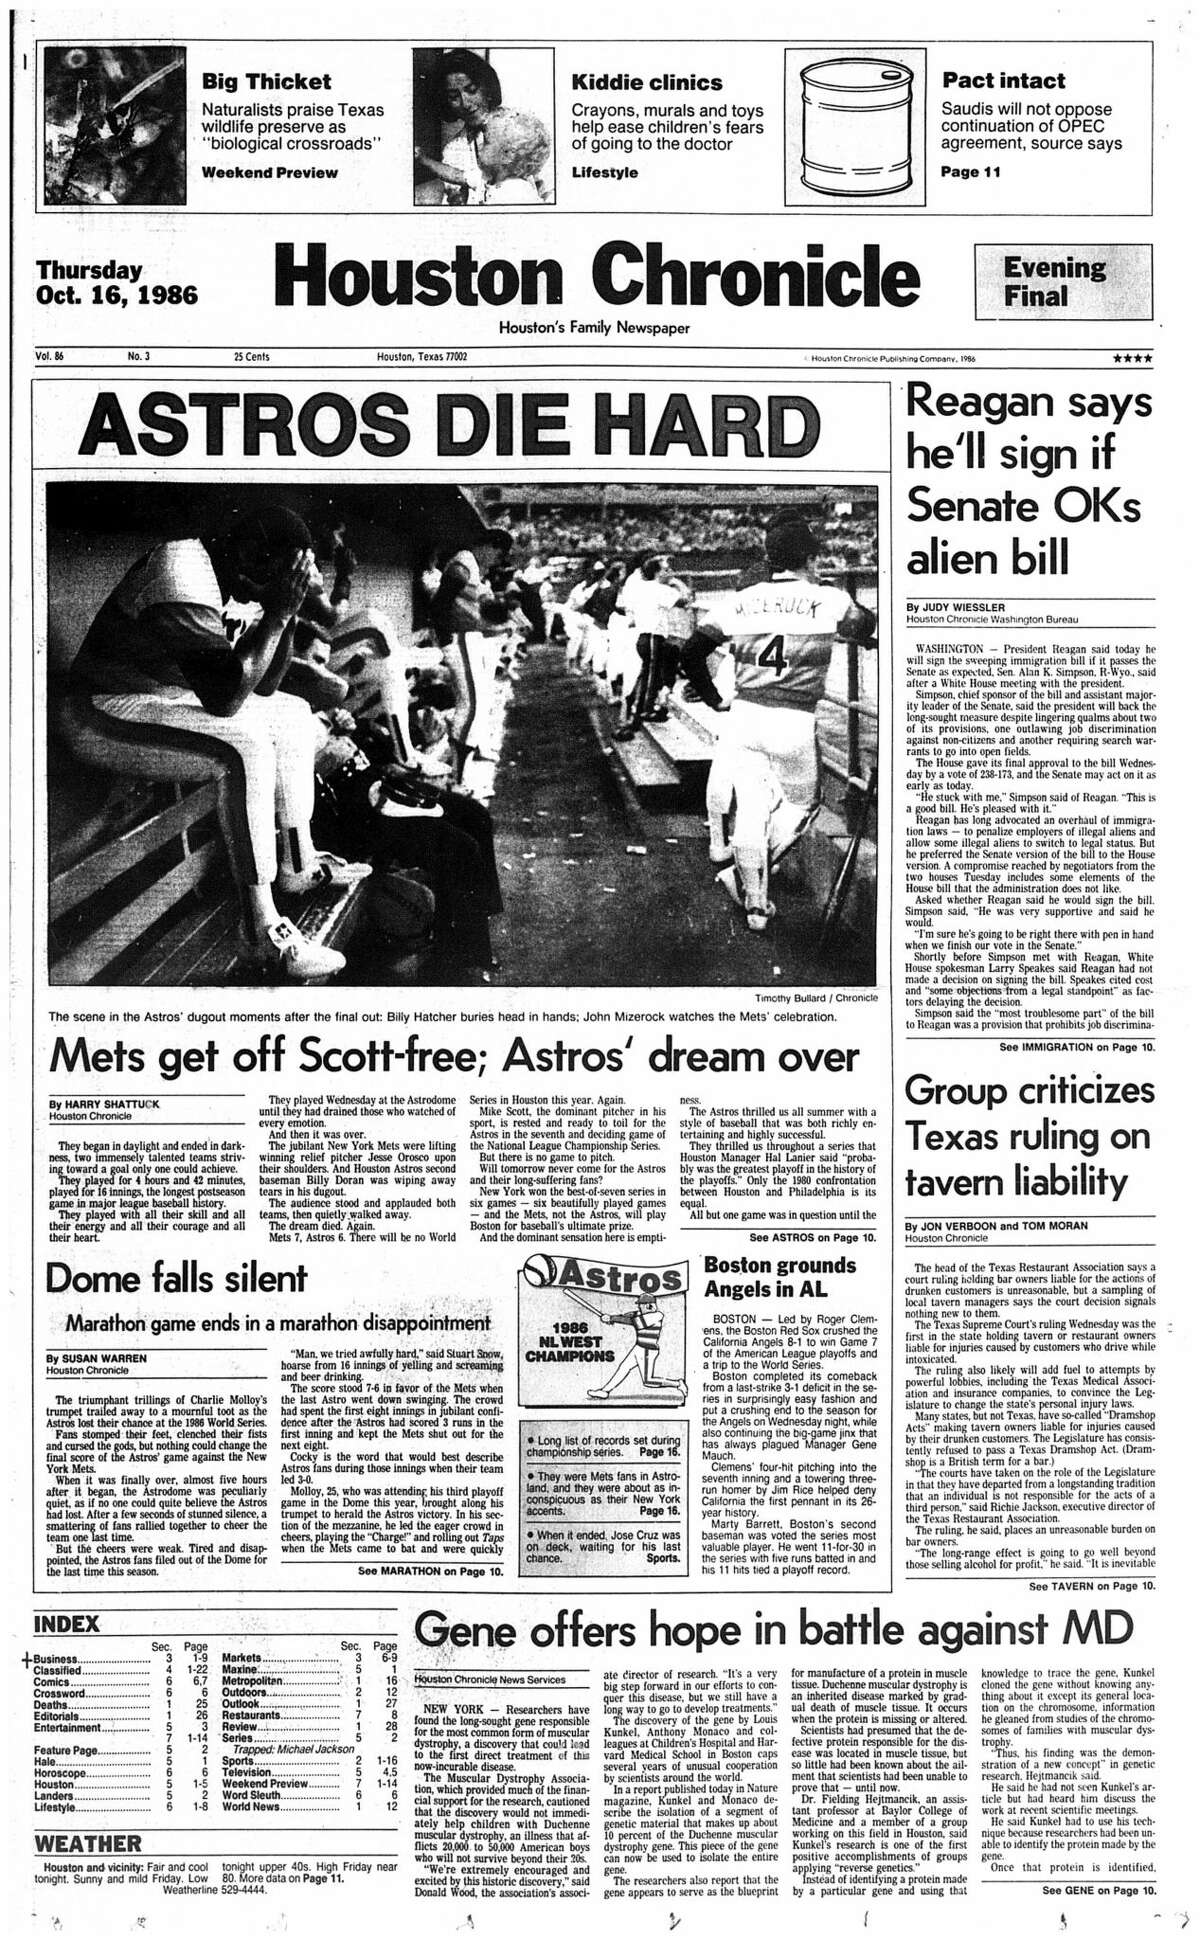 Houston Chronicle front page from Oct. 16, 1986, after Game 6 of the Astros/Mets National League Championship Series.